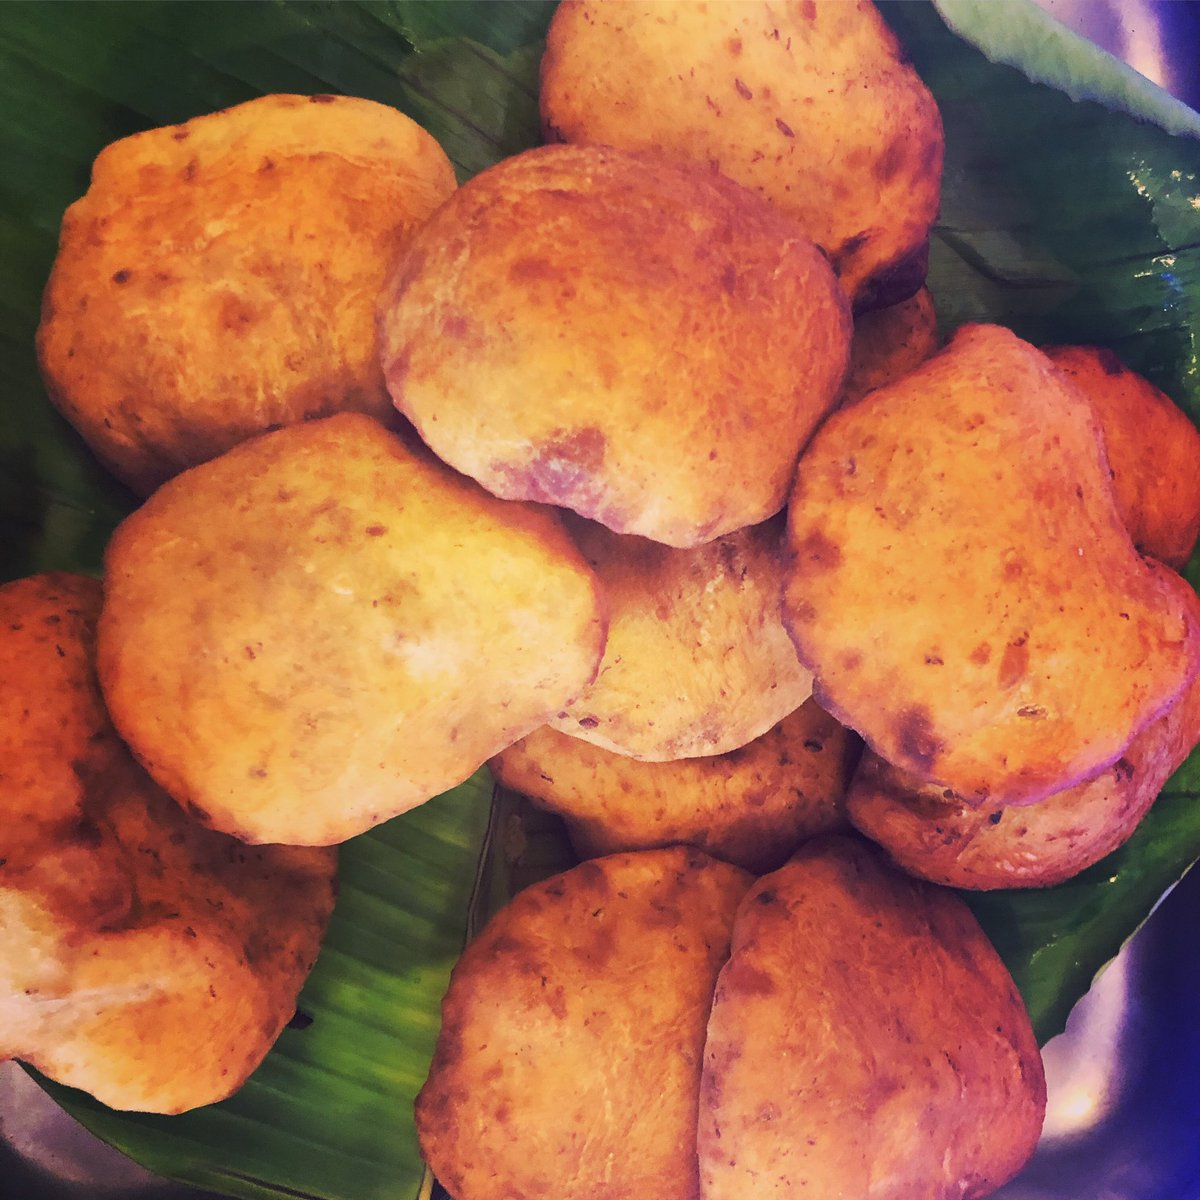 #mangalurumusings #kodyalkatha I first sunk my teeth into these mildly sweet, fluffy, delicious buns at a family function. The chef told me they were called mangalore buns and were made from a batter made of overripe bananas, sugar, yoghurt and flour. @mlrlitfest